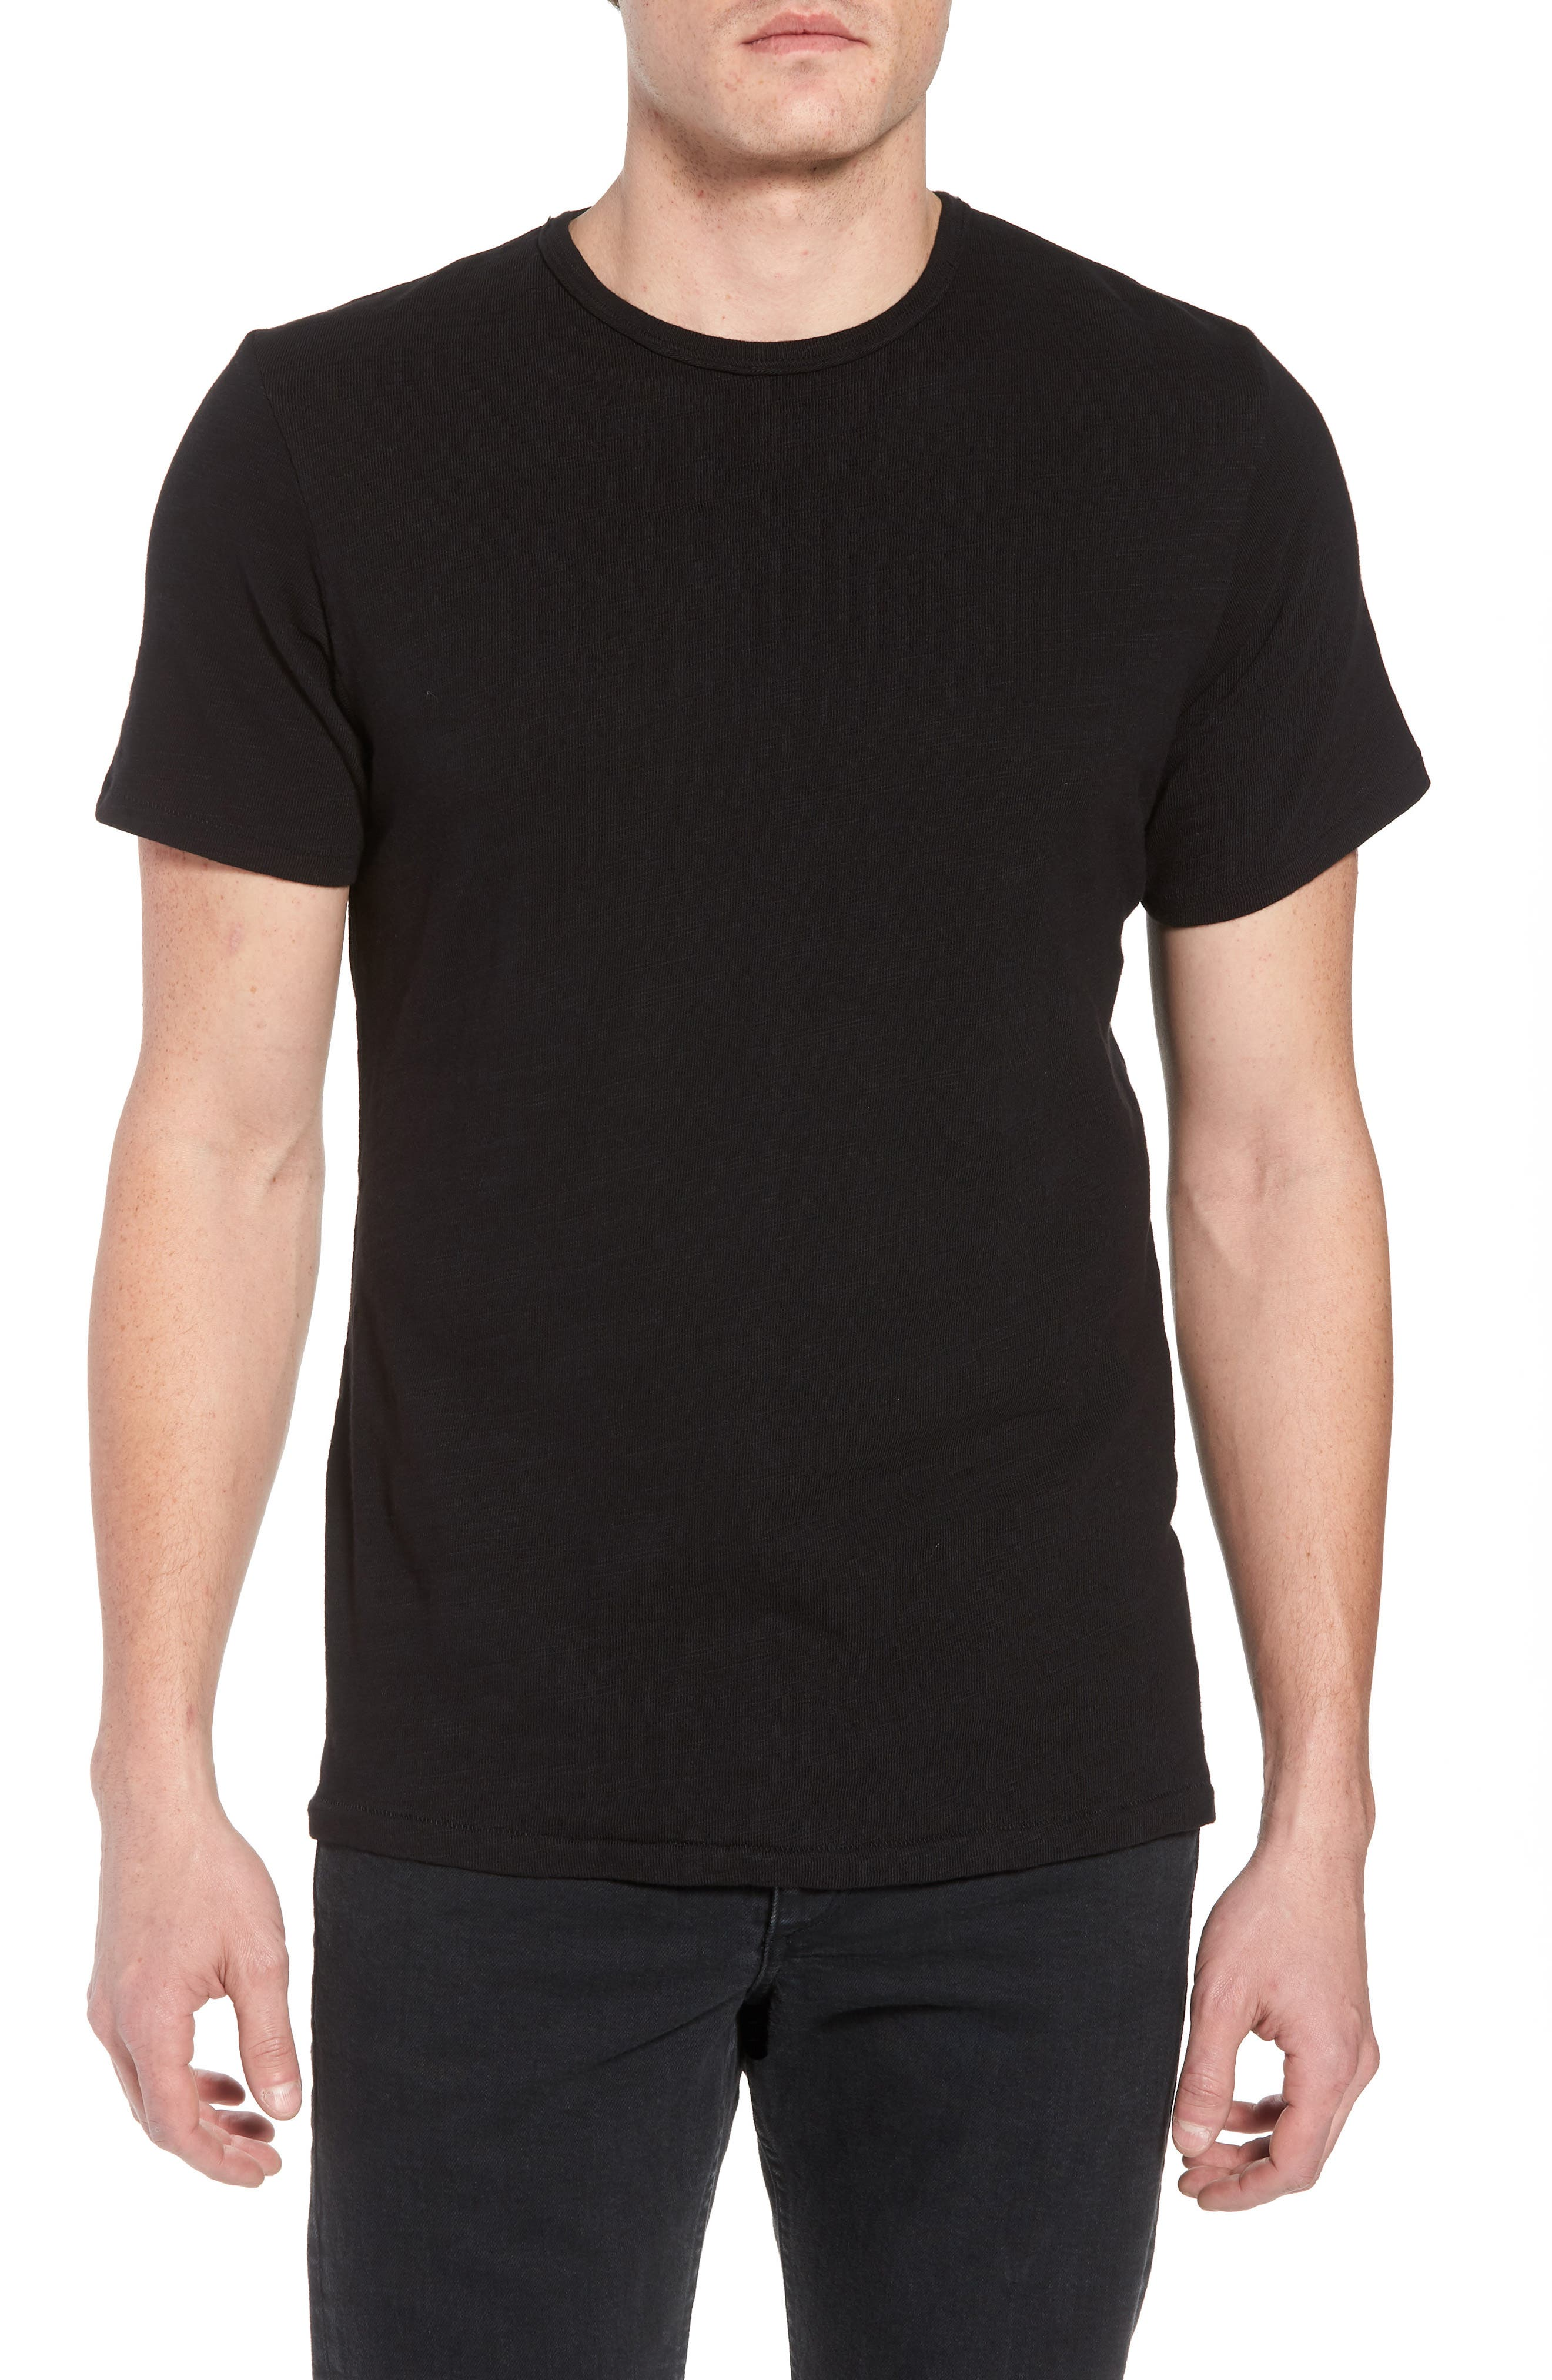 Alternate Image 1 Selected - rag & bone Classic Crewneck Cotton T-Shirt